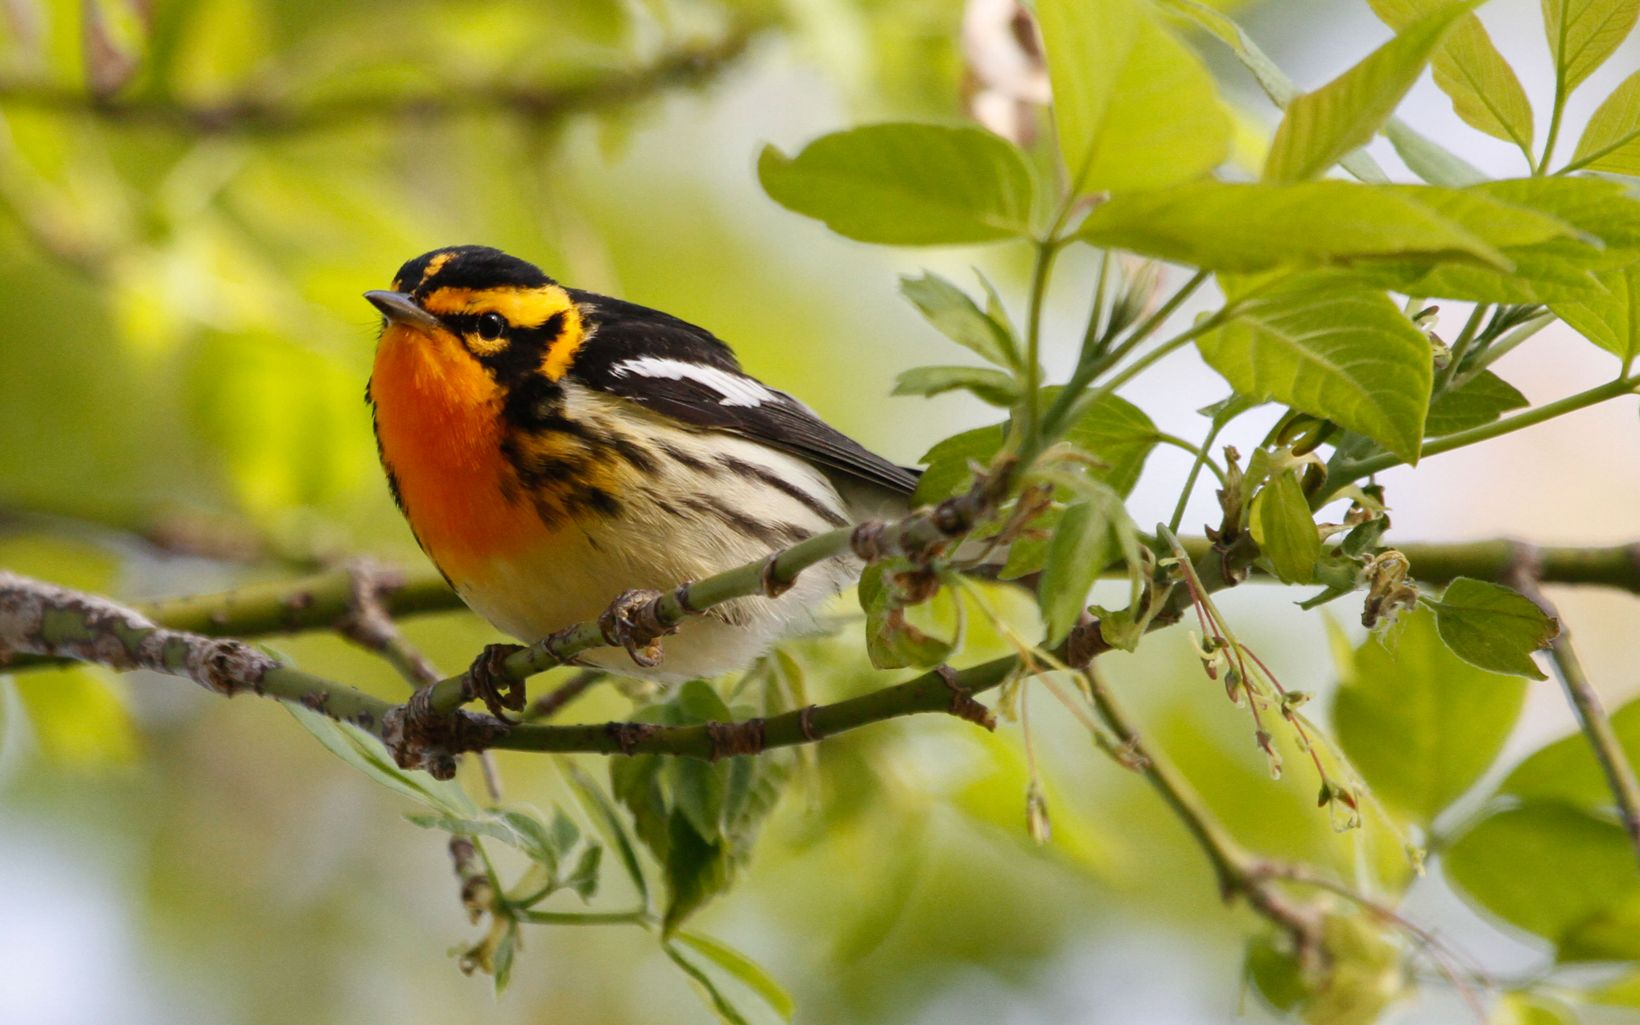 A small orange and black bird rests on a branch.